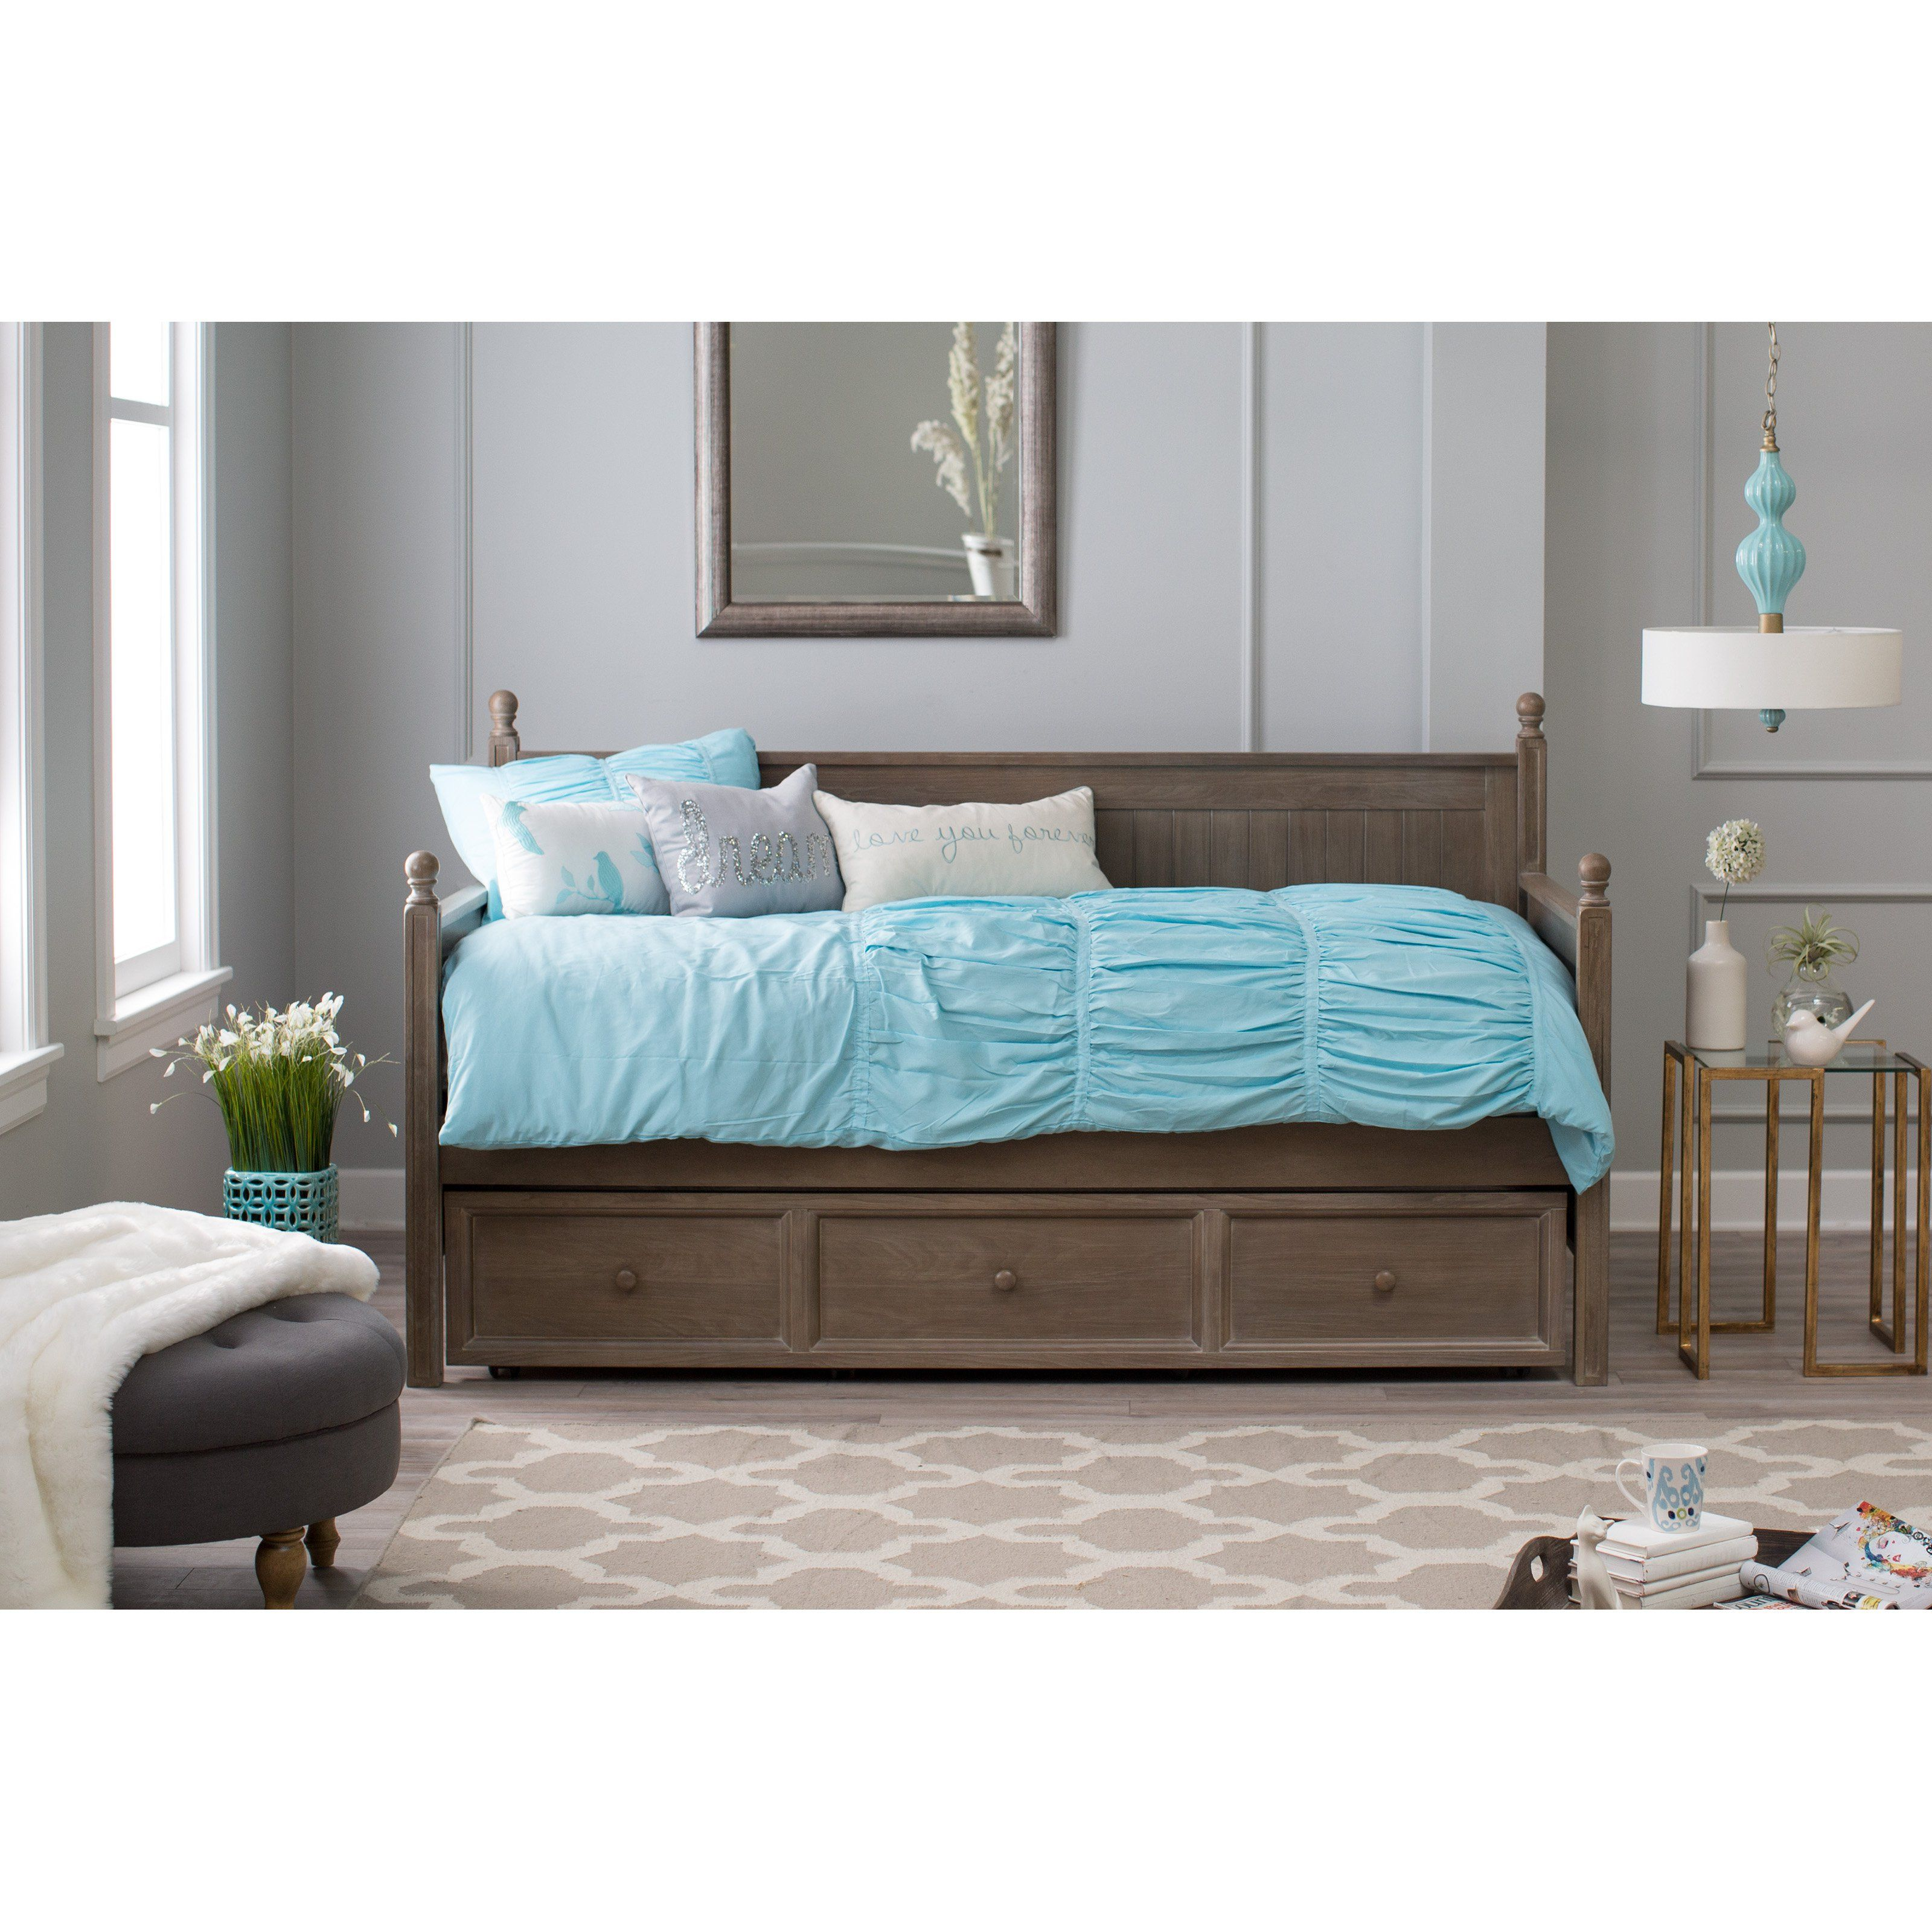 Belham Living Casey Daybed Washed Gray from hayneedle